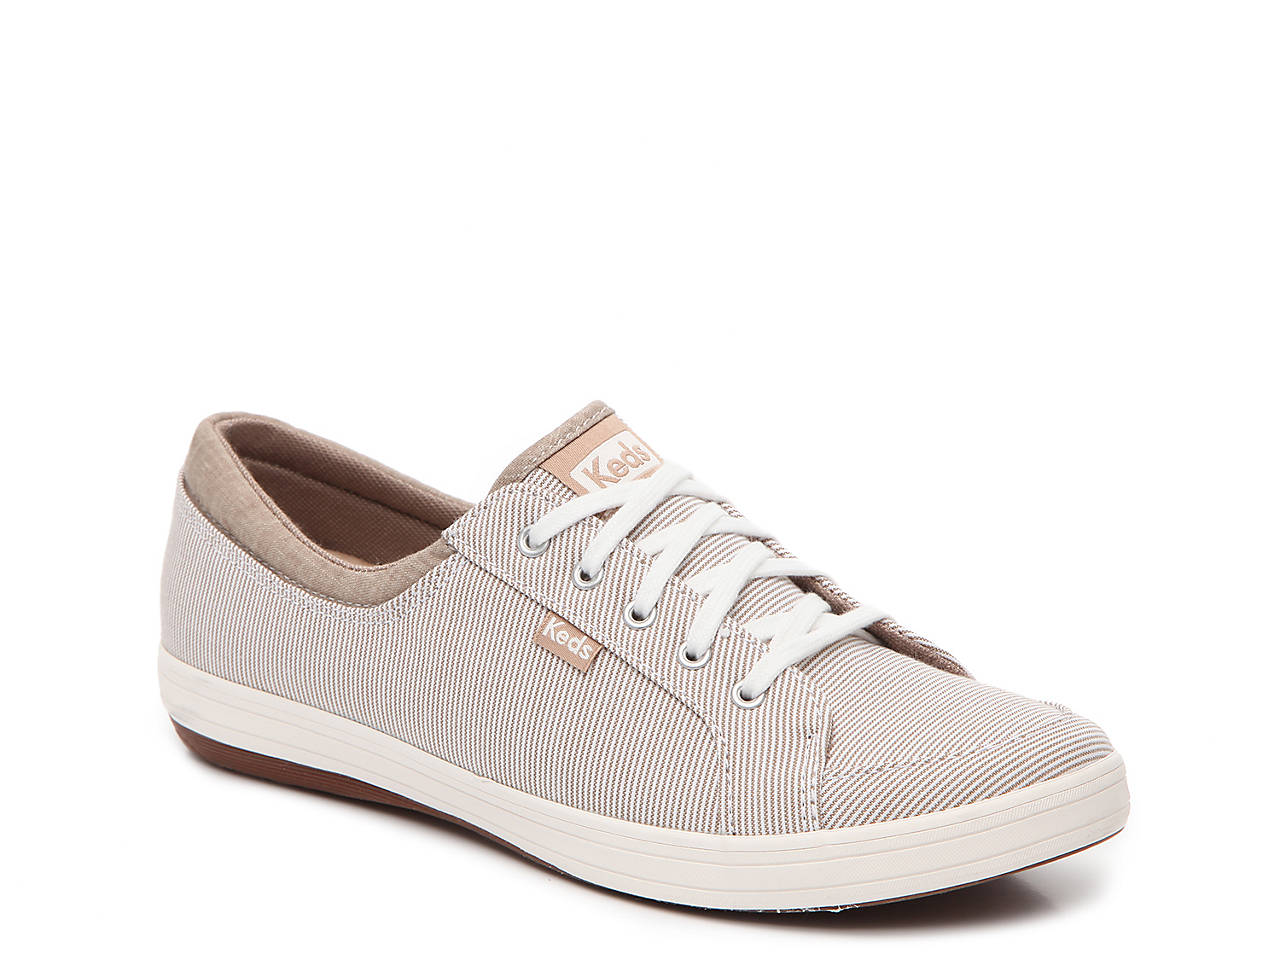 Keds Vollie II Sneaker (Women's)